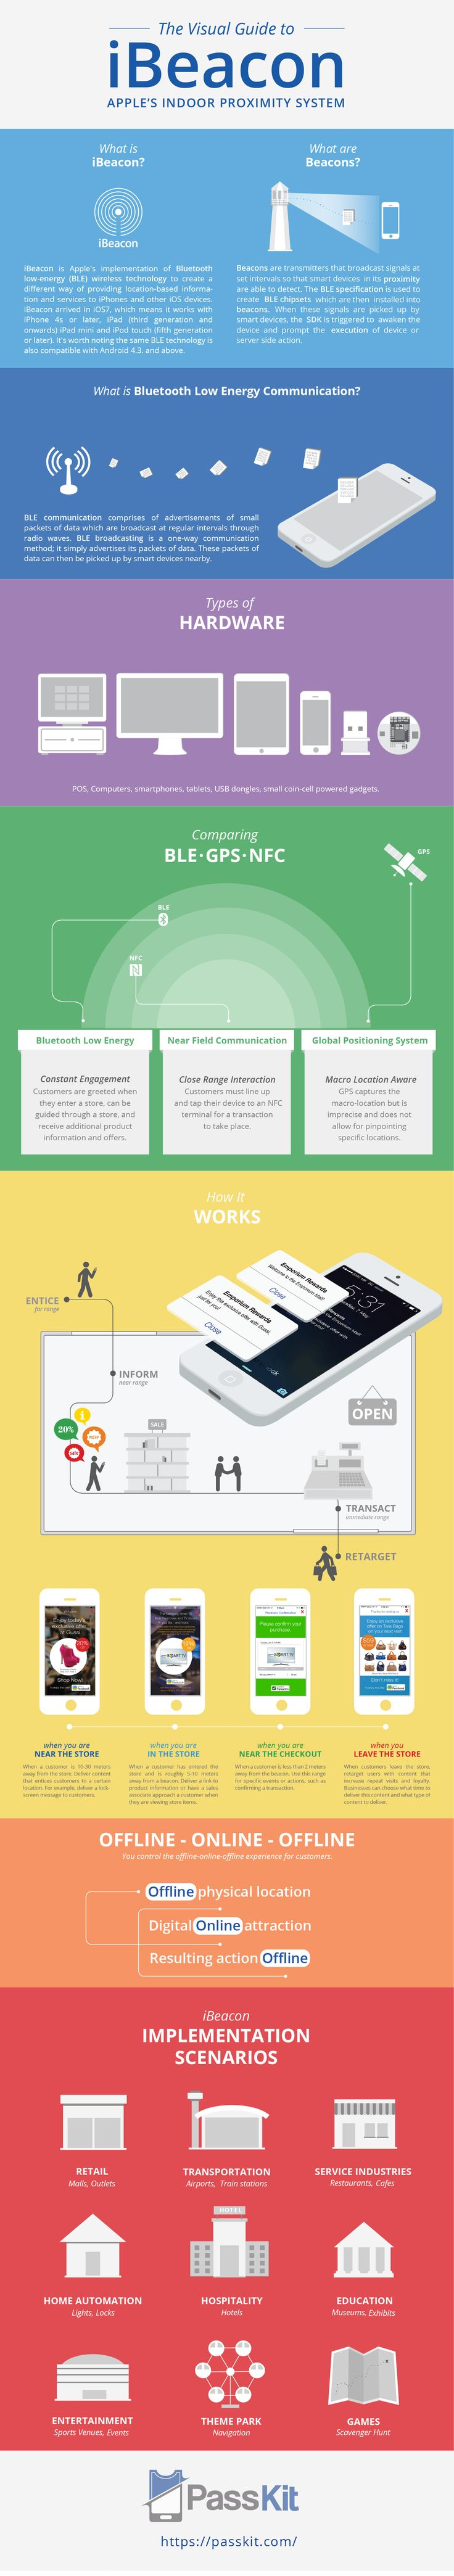 The Visual Guide to iBeacons